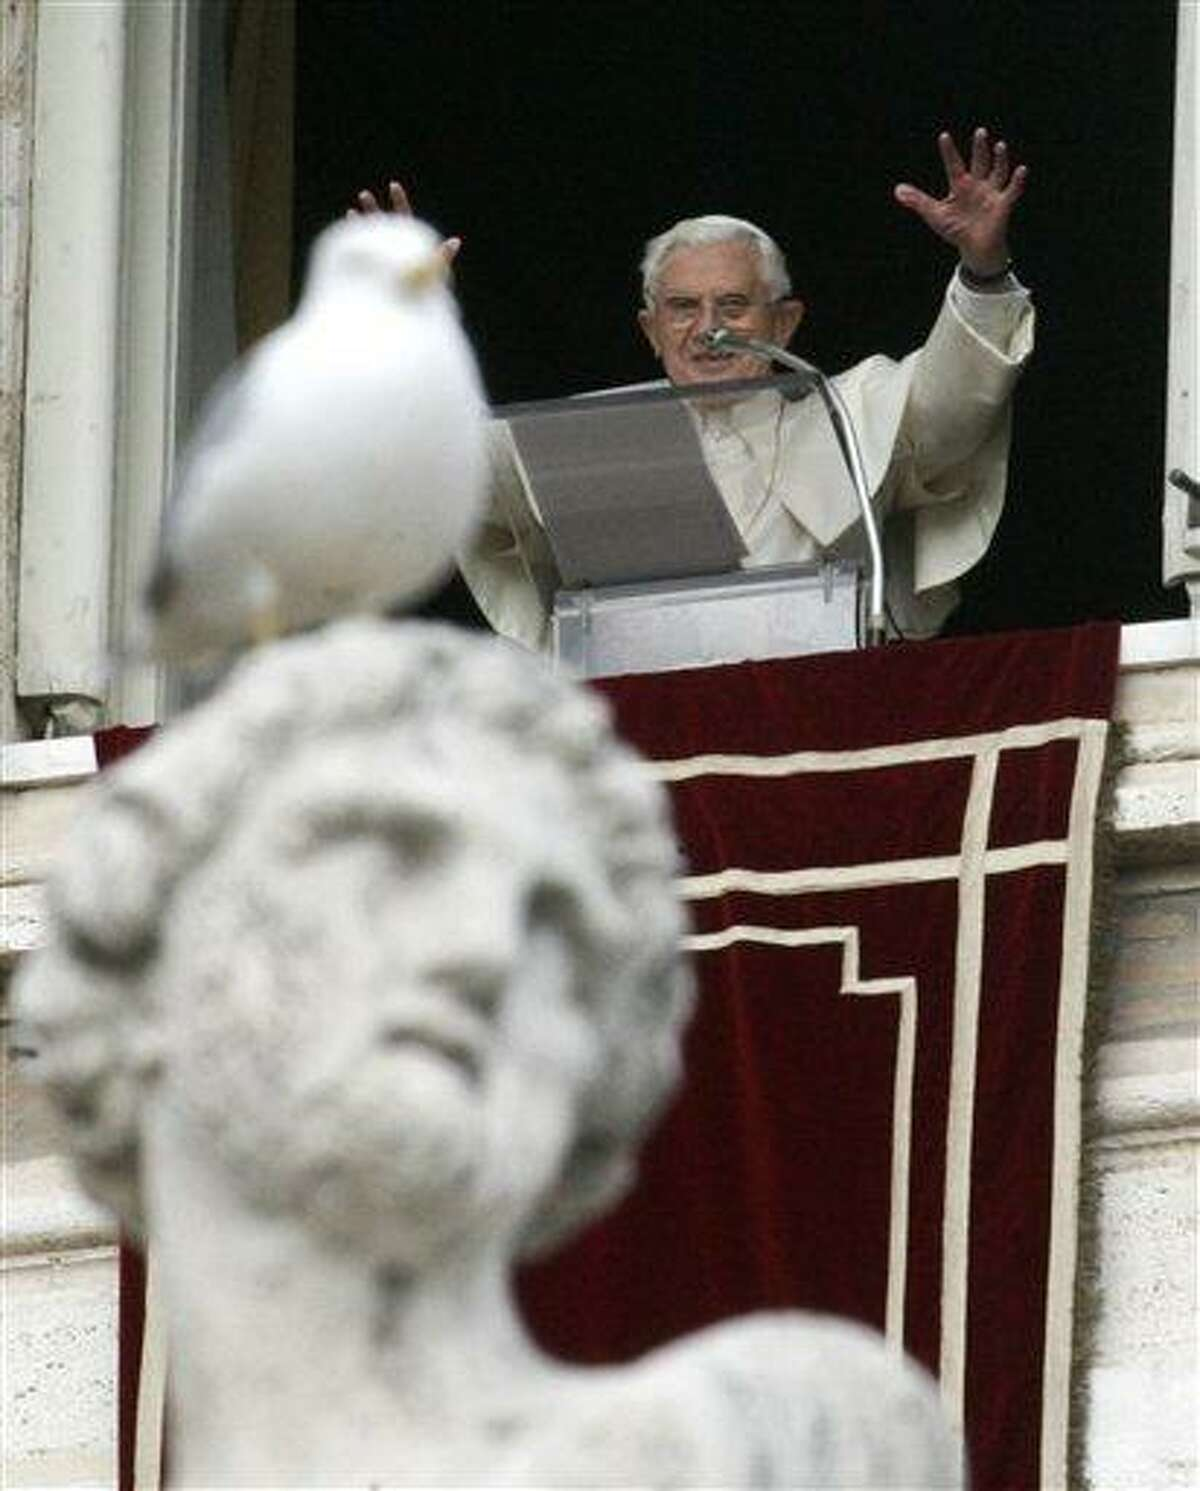 File photo from December, 2011, shows Pope Benedict XVI as he greets faithful during the Angelus prayer from his studio overlooking St. Peter's square, Vatican. Associated Press